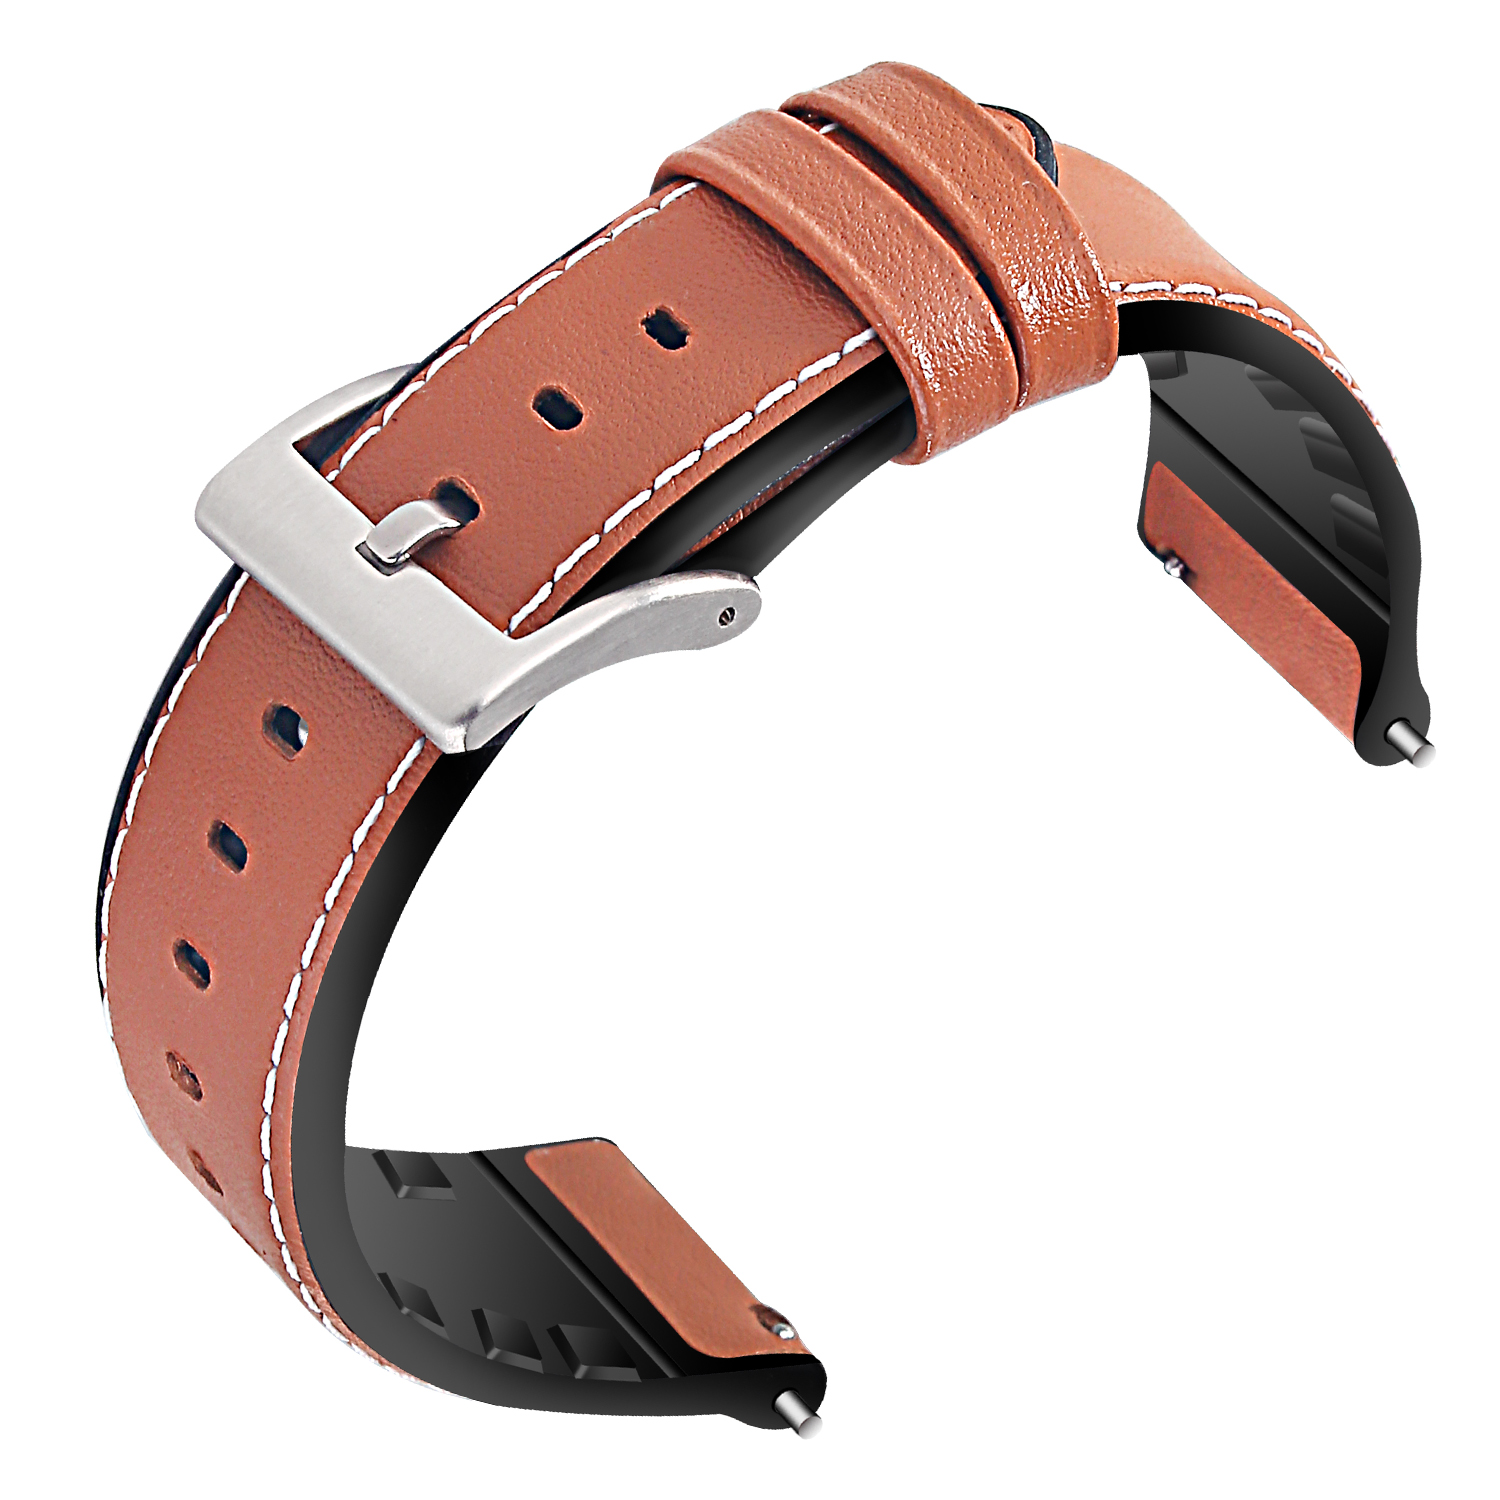 Leather Watch Bands with Soft Silicone Back - 22mm